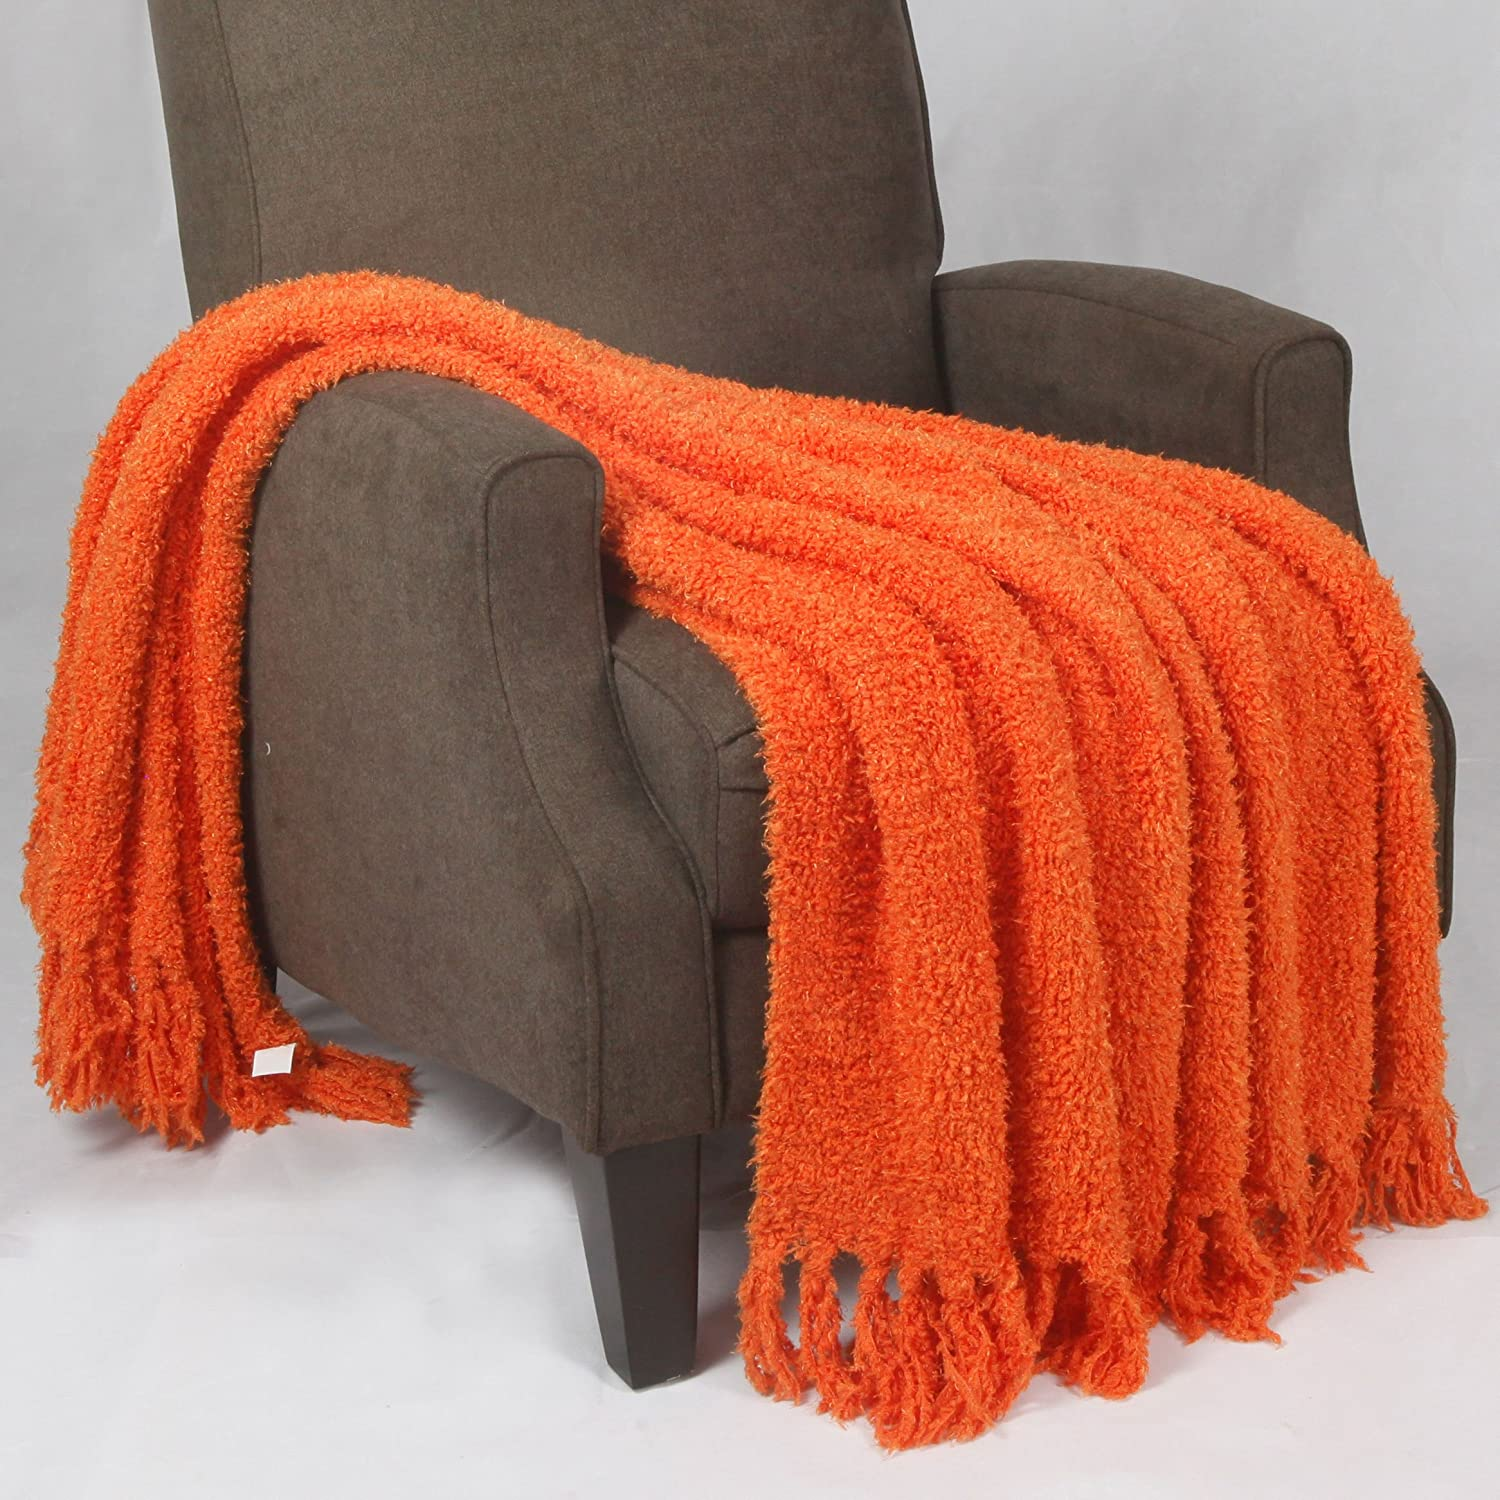 Home Soft Things Fluffy Knitted Woven Throw Couch Cover Sofa Blanket, 50